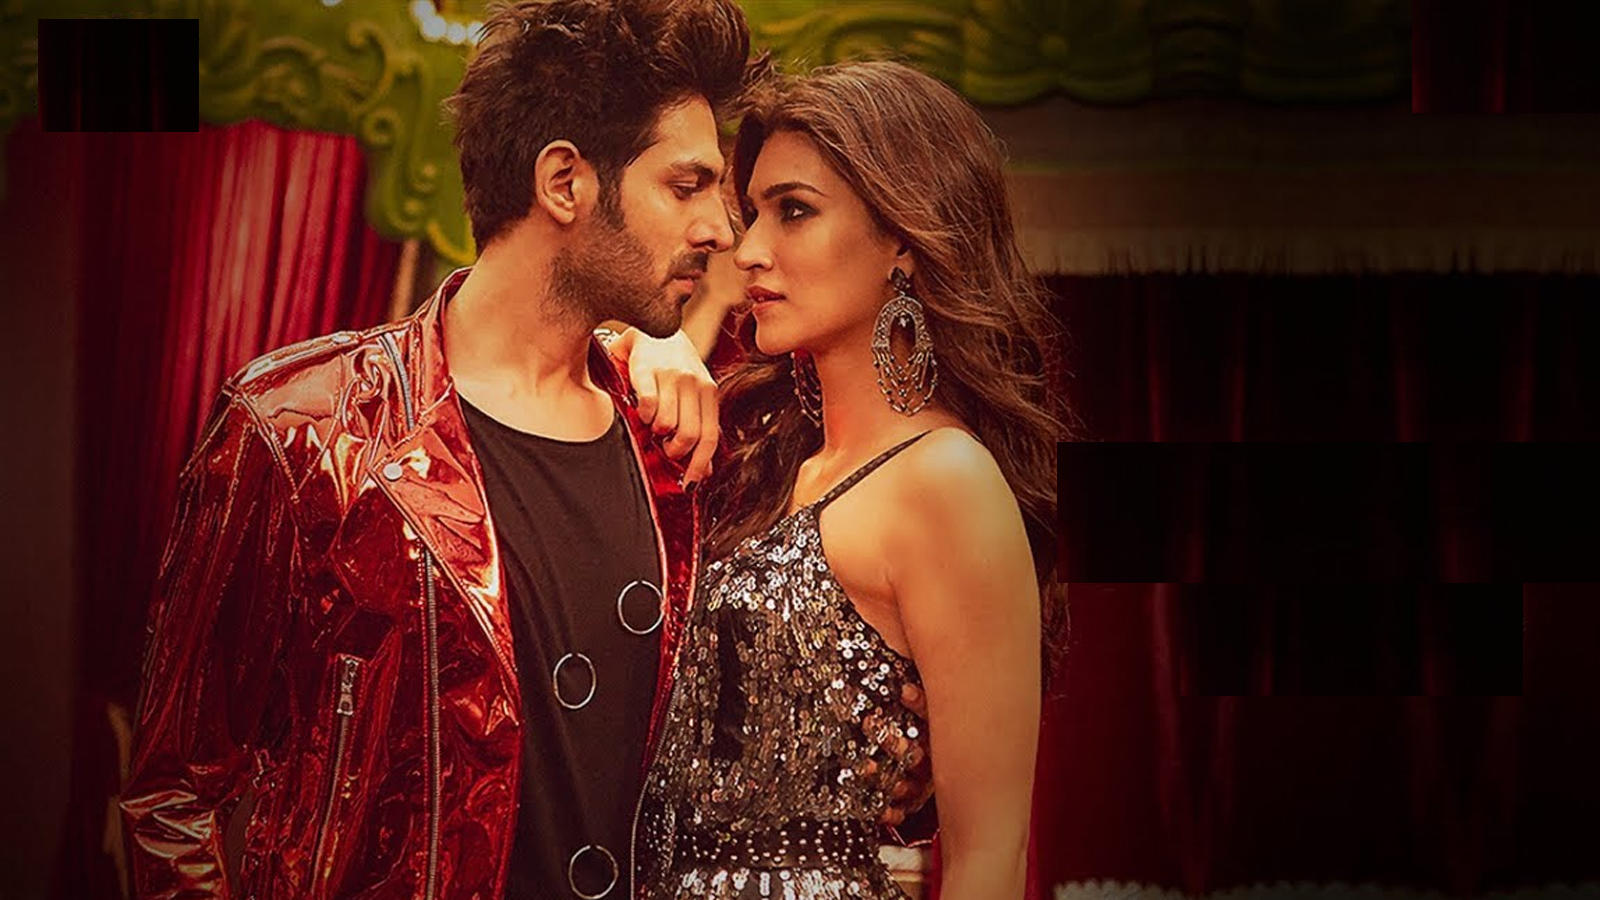 Kriti Sanon and Kartik Aaryan's song 'Coca Cola' from 'Luka Chuppi' is out